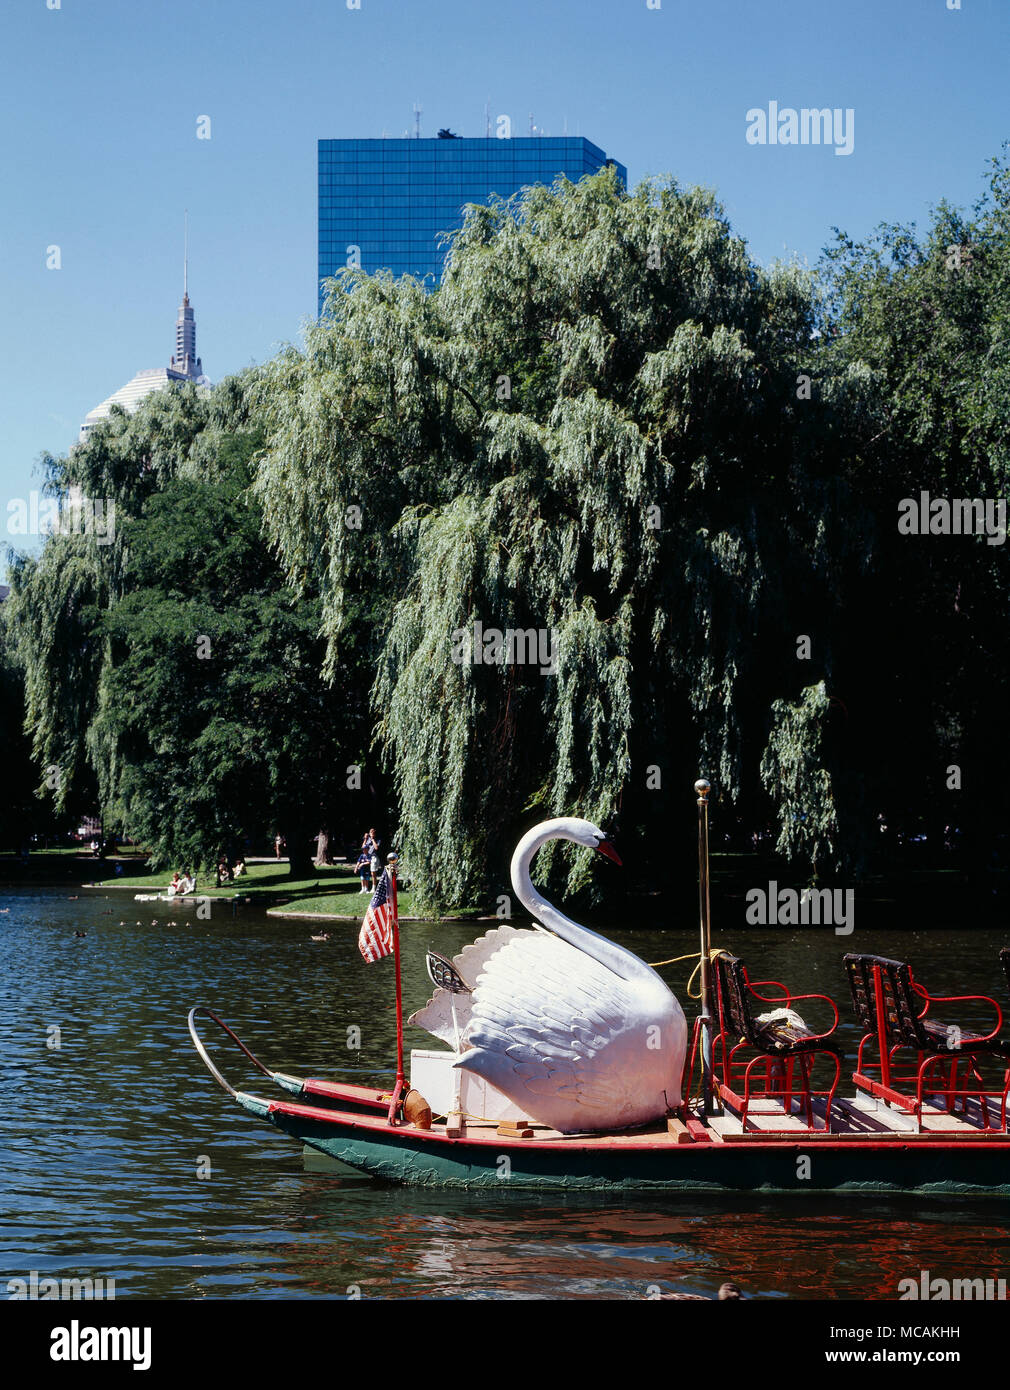 The Swan Boats are a fleet of dual-pontooned pleasure boats which operate in a pond in the Public Garden in Boston, Massachusetts. The Swan Boats have been in operation since 1877, and have since become a cultural icon for the city.  Robert Paget first created the Swan Boats in the Public Garden in 1877 after operating a Row Boat rental operation, after seeing the opera Lohengrin with his wife Julia Paget. Inspired by the Knight's gallant rescue of the damsel by riding a Swan across the lake, Paget decided to capitalize on the recent popularity of the bicycle and combine boat with swan and bic - Stock Image